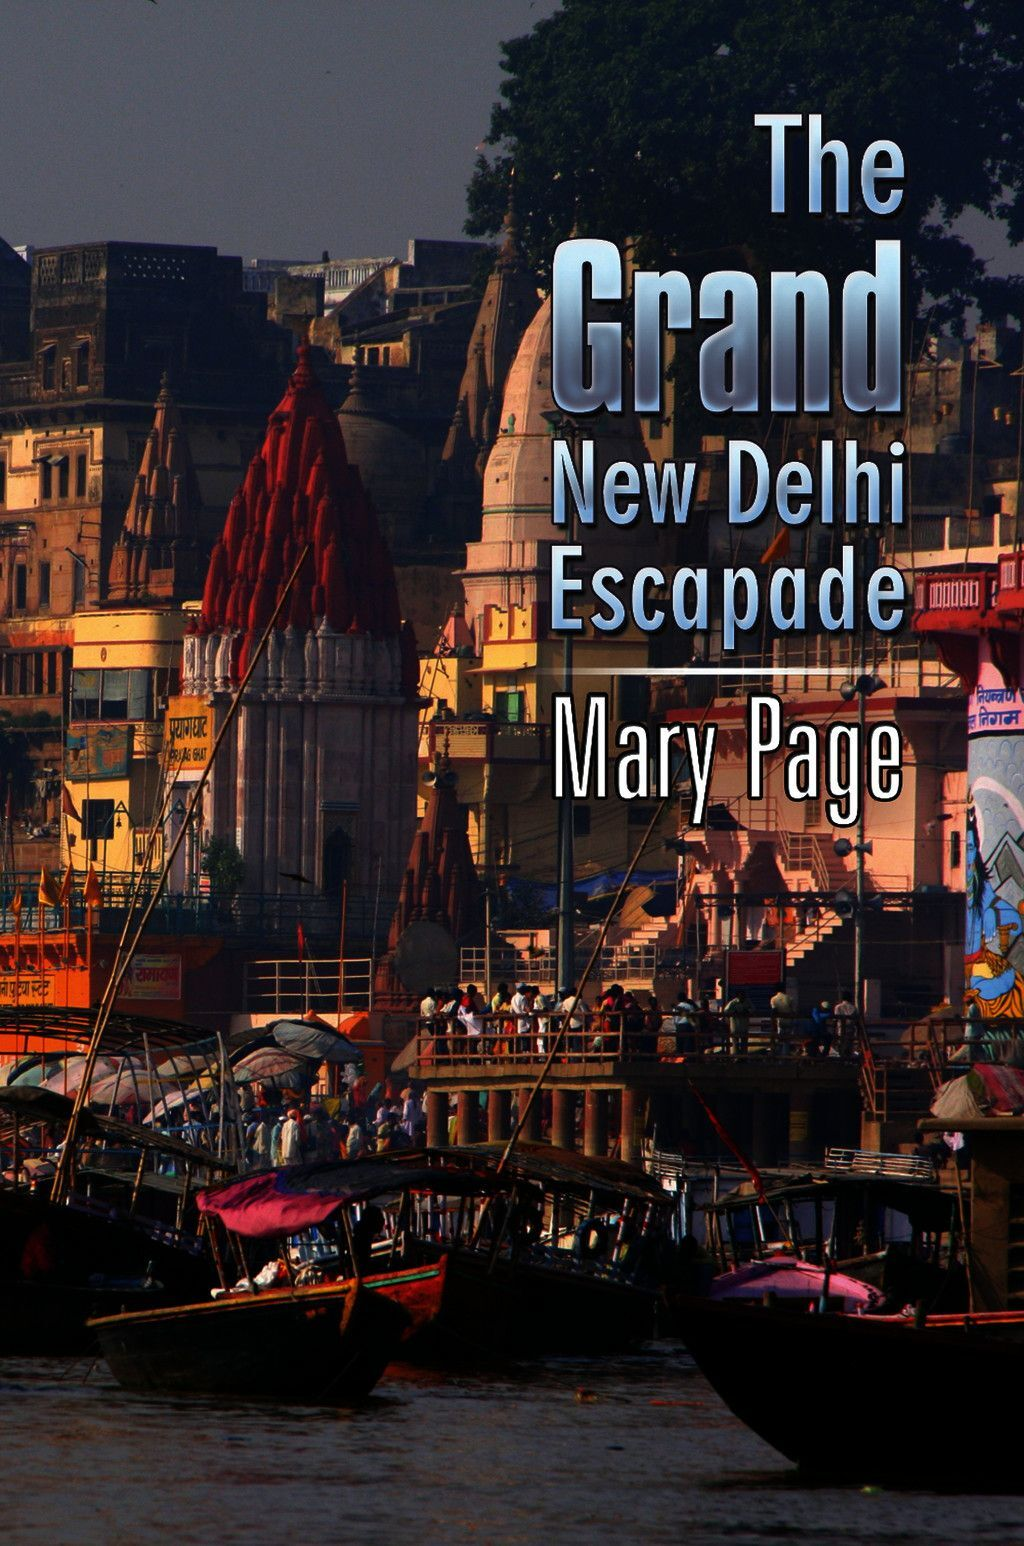 The Grand New Delhi Escapade